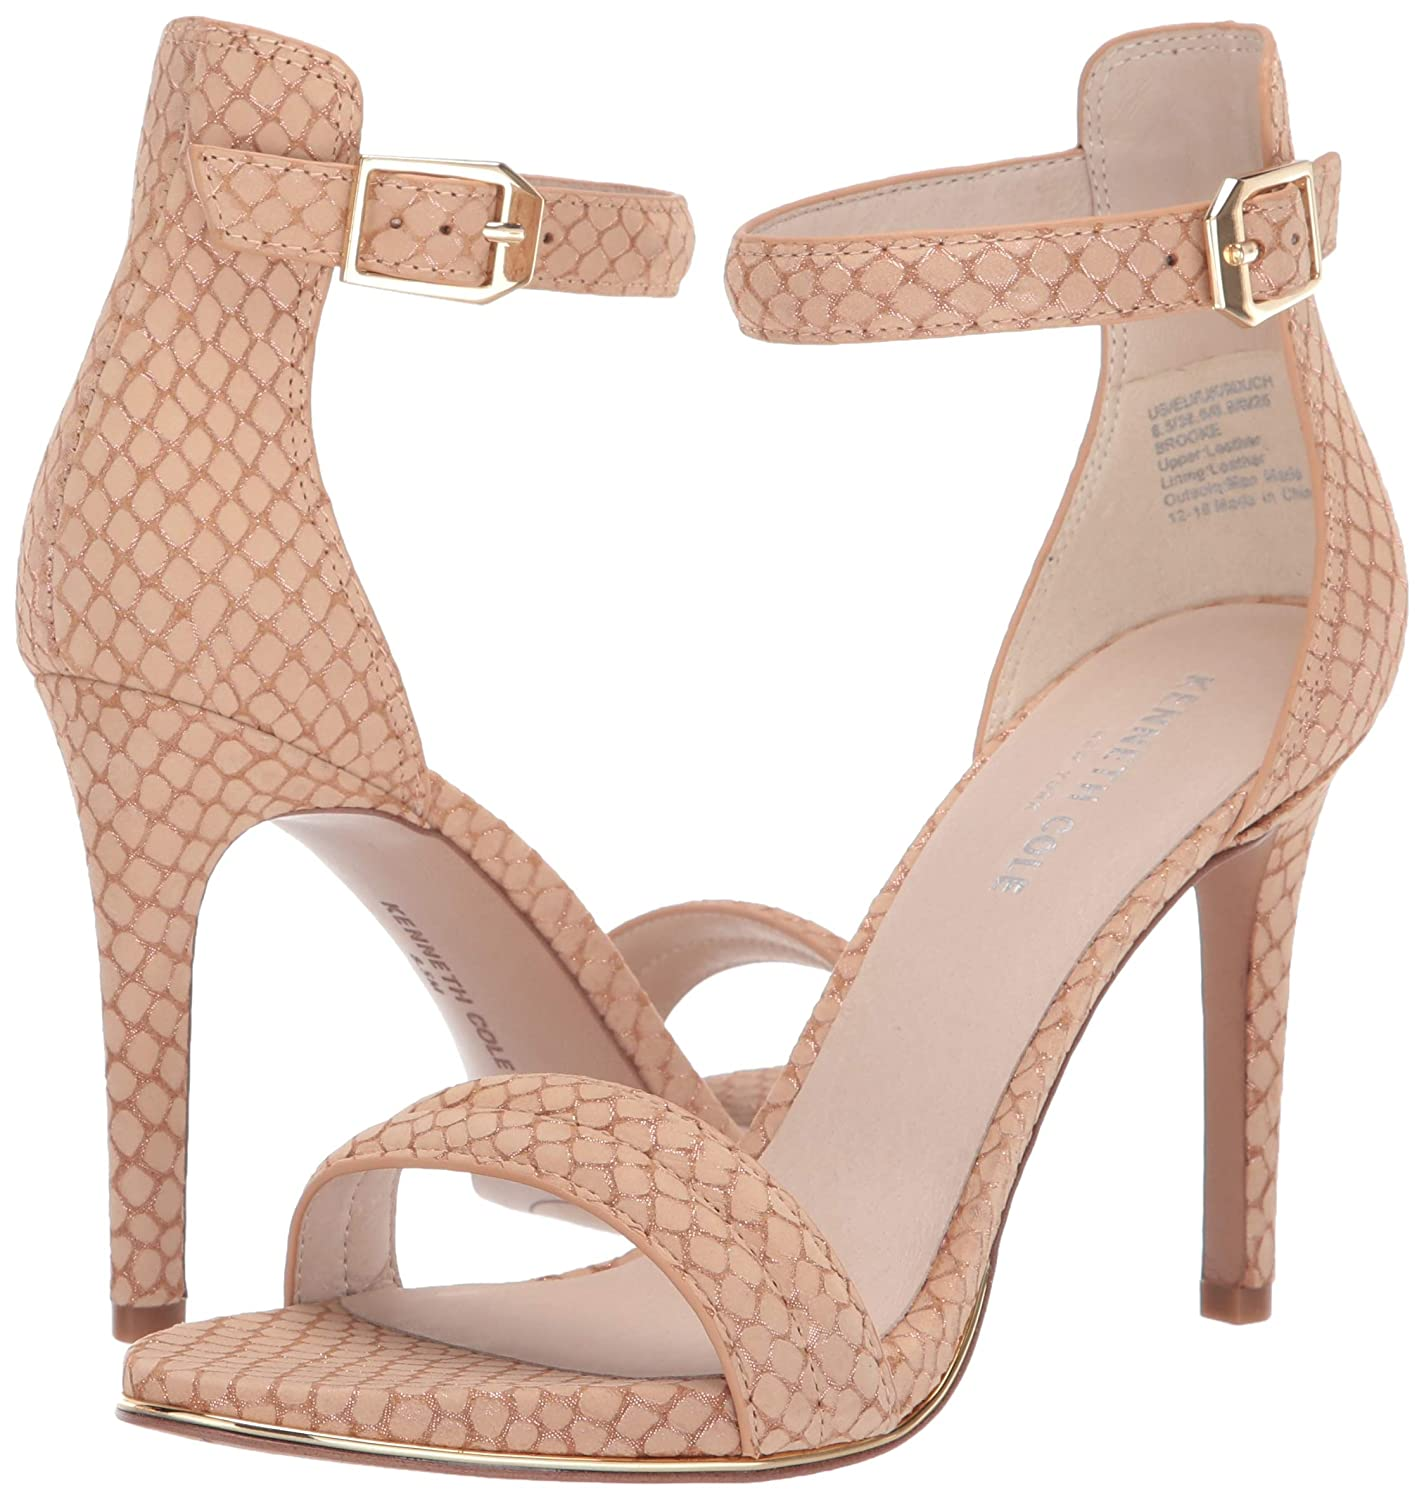 61a5fcd27a09 Amazon.com  Kenneth Cole New York Women s Brooke High Heel Dress Sandal  with Ankle Strap Heeled  Shoes